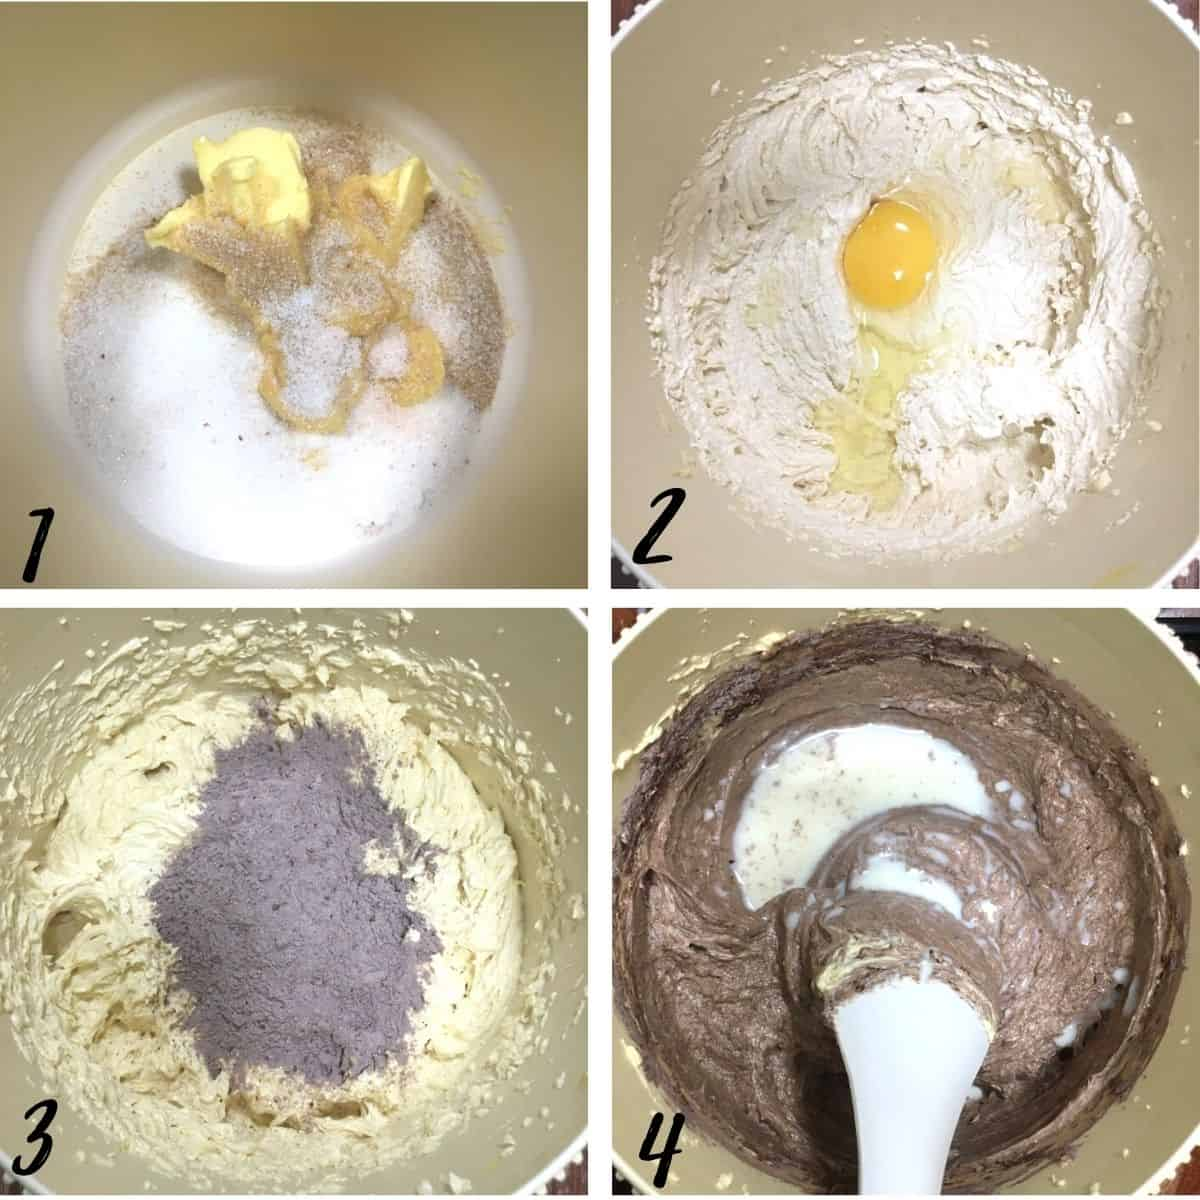 A poster of 4 images showing how to mix chocolate cupcakes from scratch